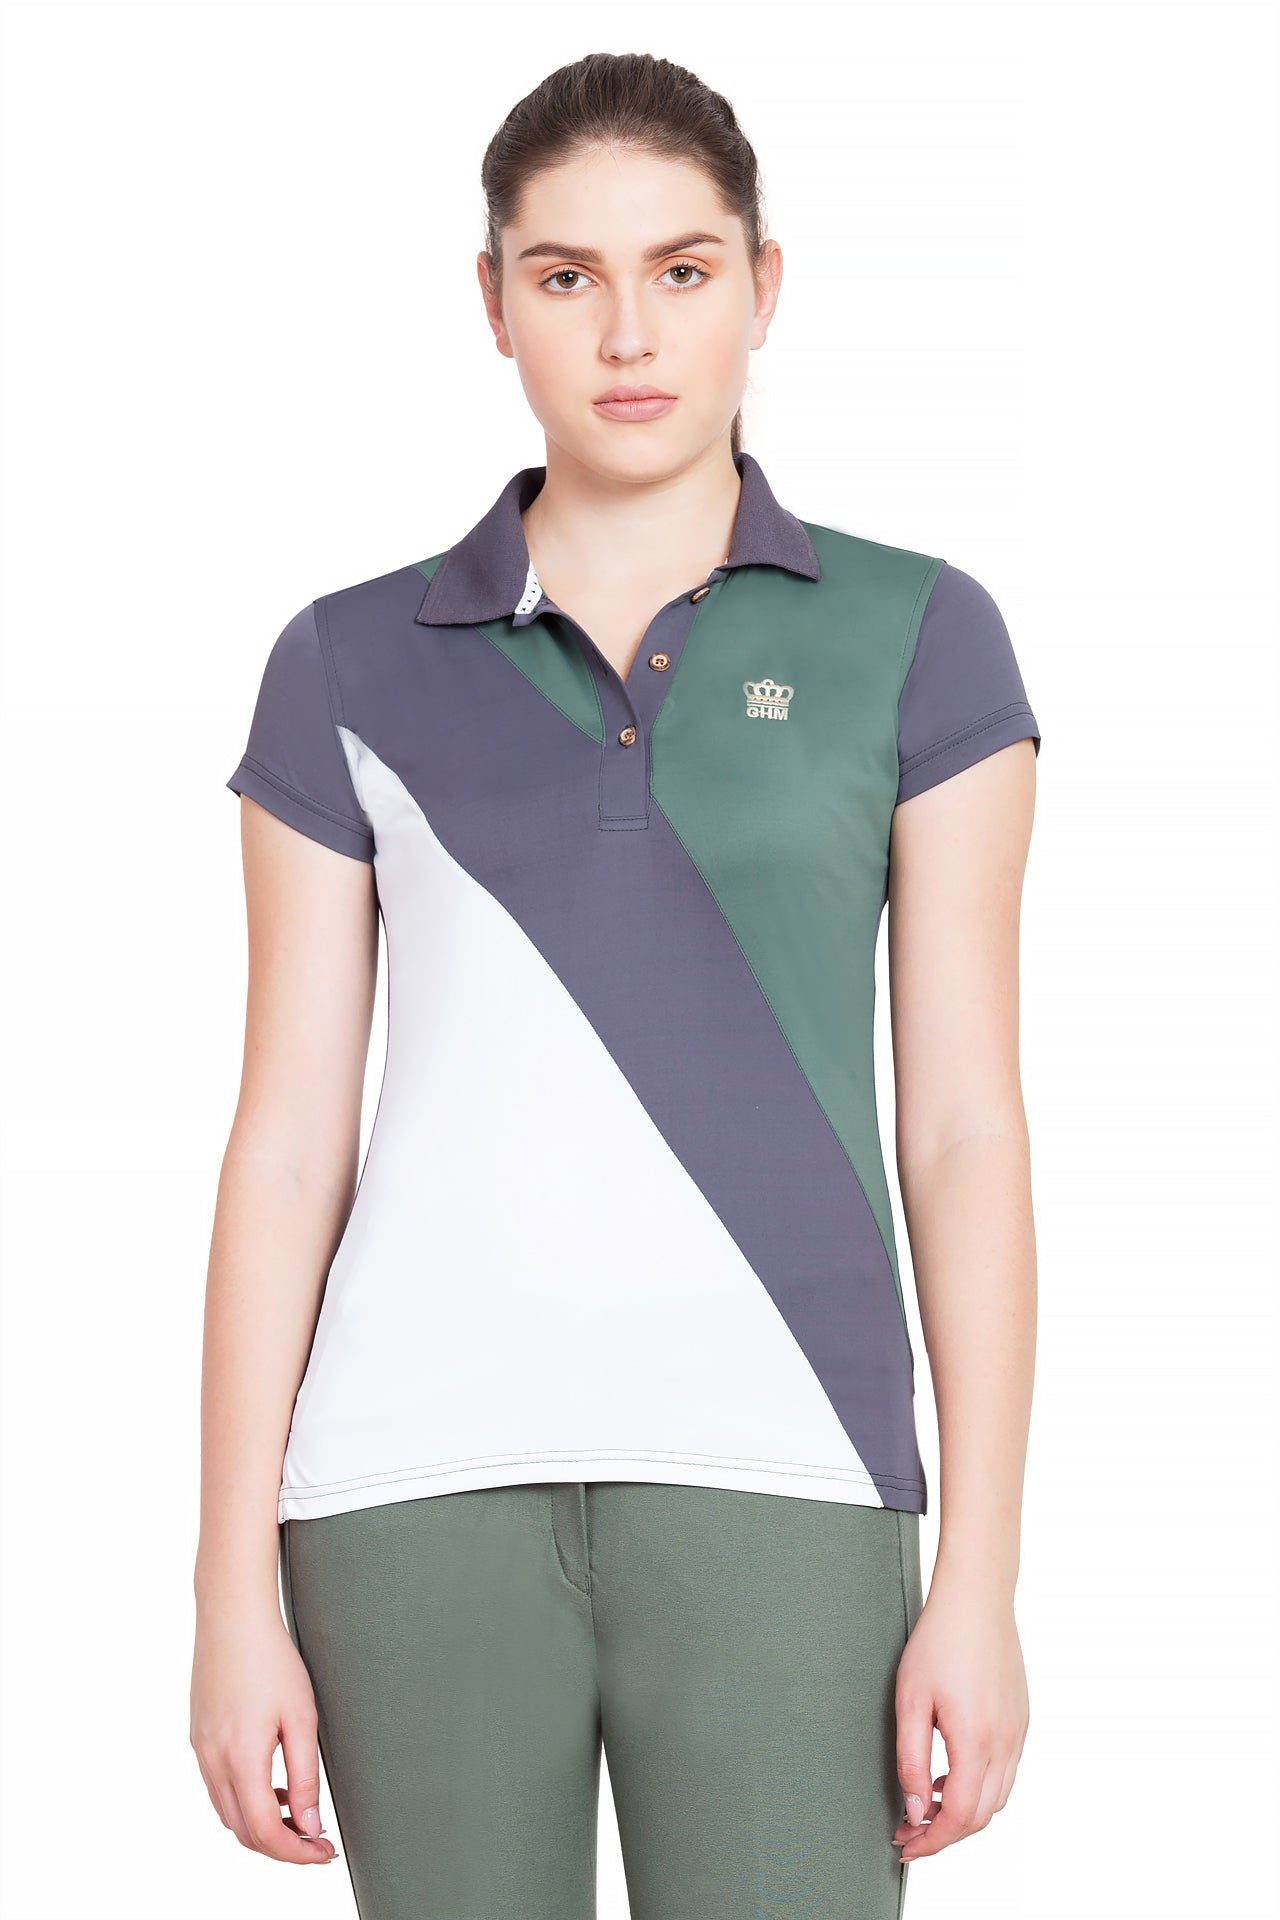 George H Morris Ladies Pro Sport Short Sleeve Polo Sport Shirt - George H Morris - Breeches.com